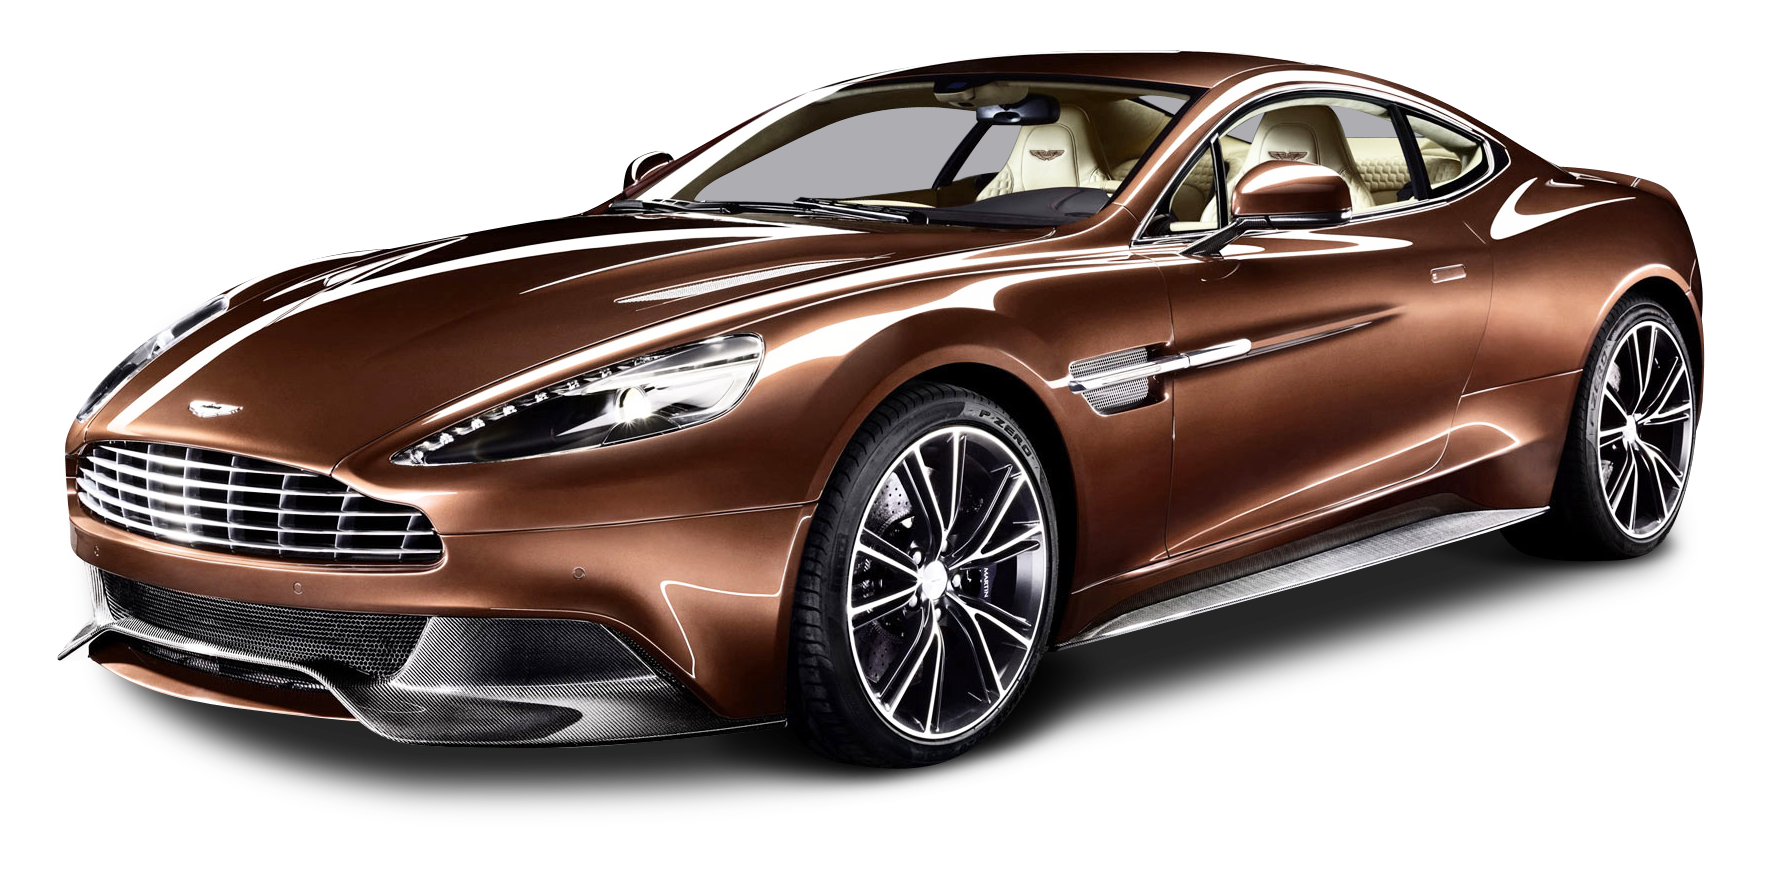 Cars transparent background. Aston martin vanquish car